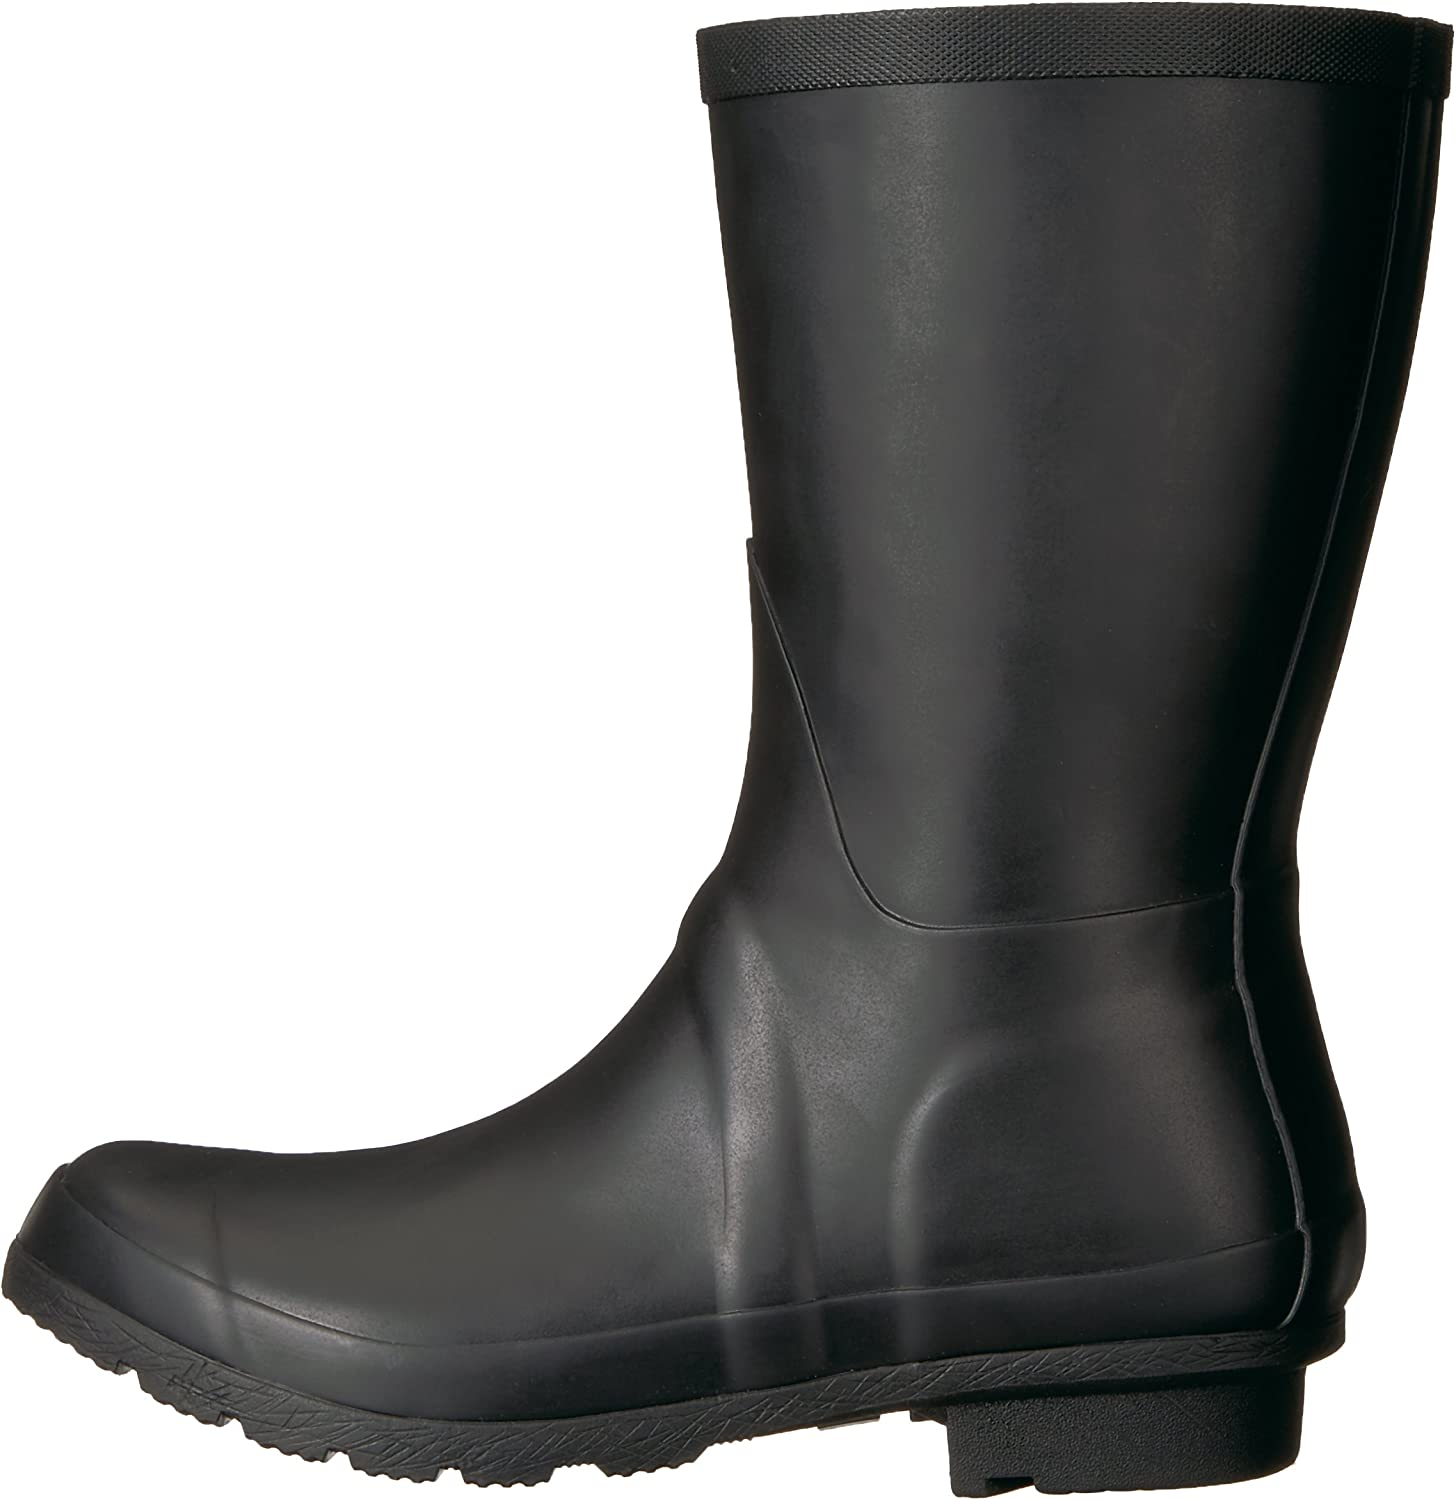 Brand 206 Collective Womens Linden Mid Rain Boot